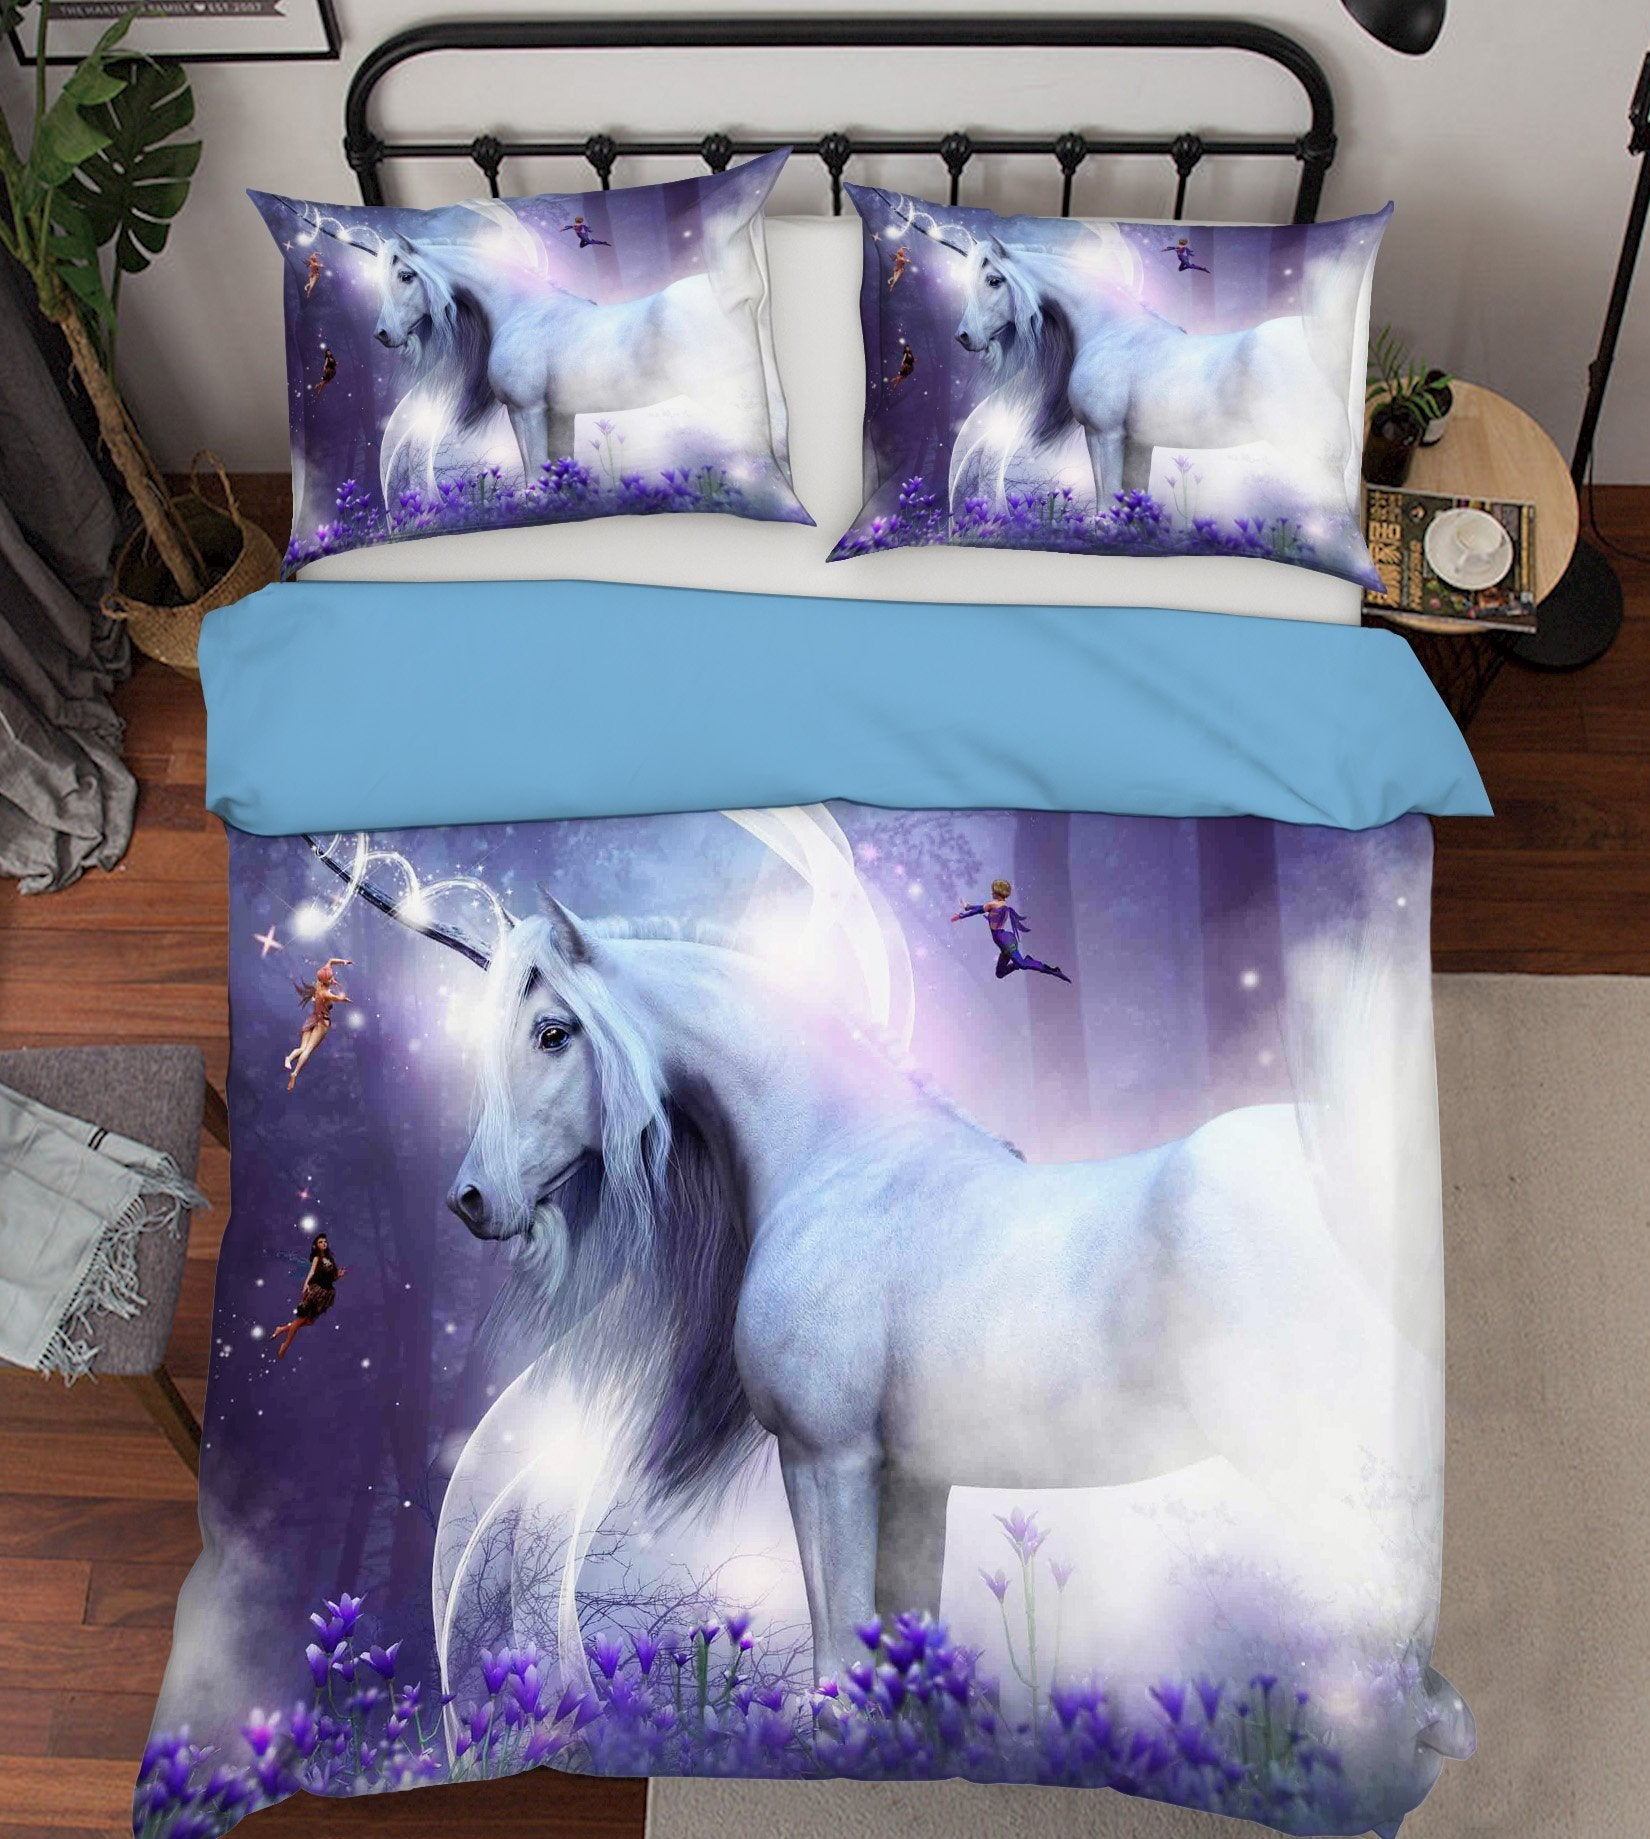 3D Dream Elf Unicorn 060 Bed Pillowcases Quilt Wallpaper AJ Wallpaper